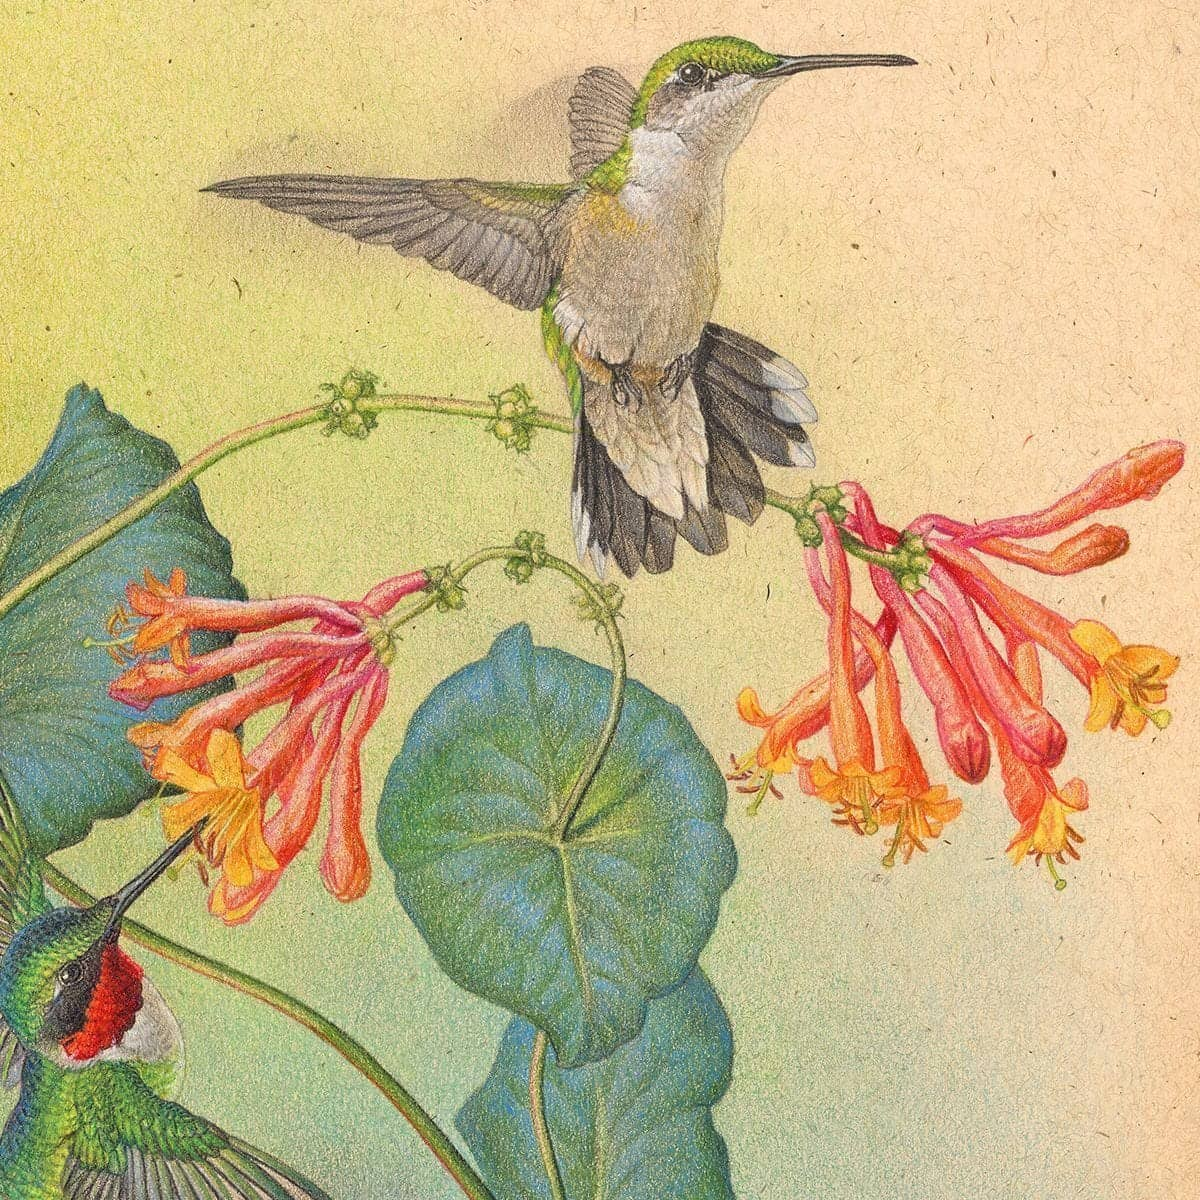 Ruby-throated Hummingbirds with Trumpet Flower - Canvas Print by Glen Loates from the Glen Loates Store